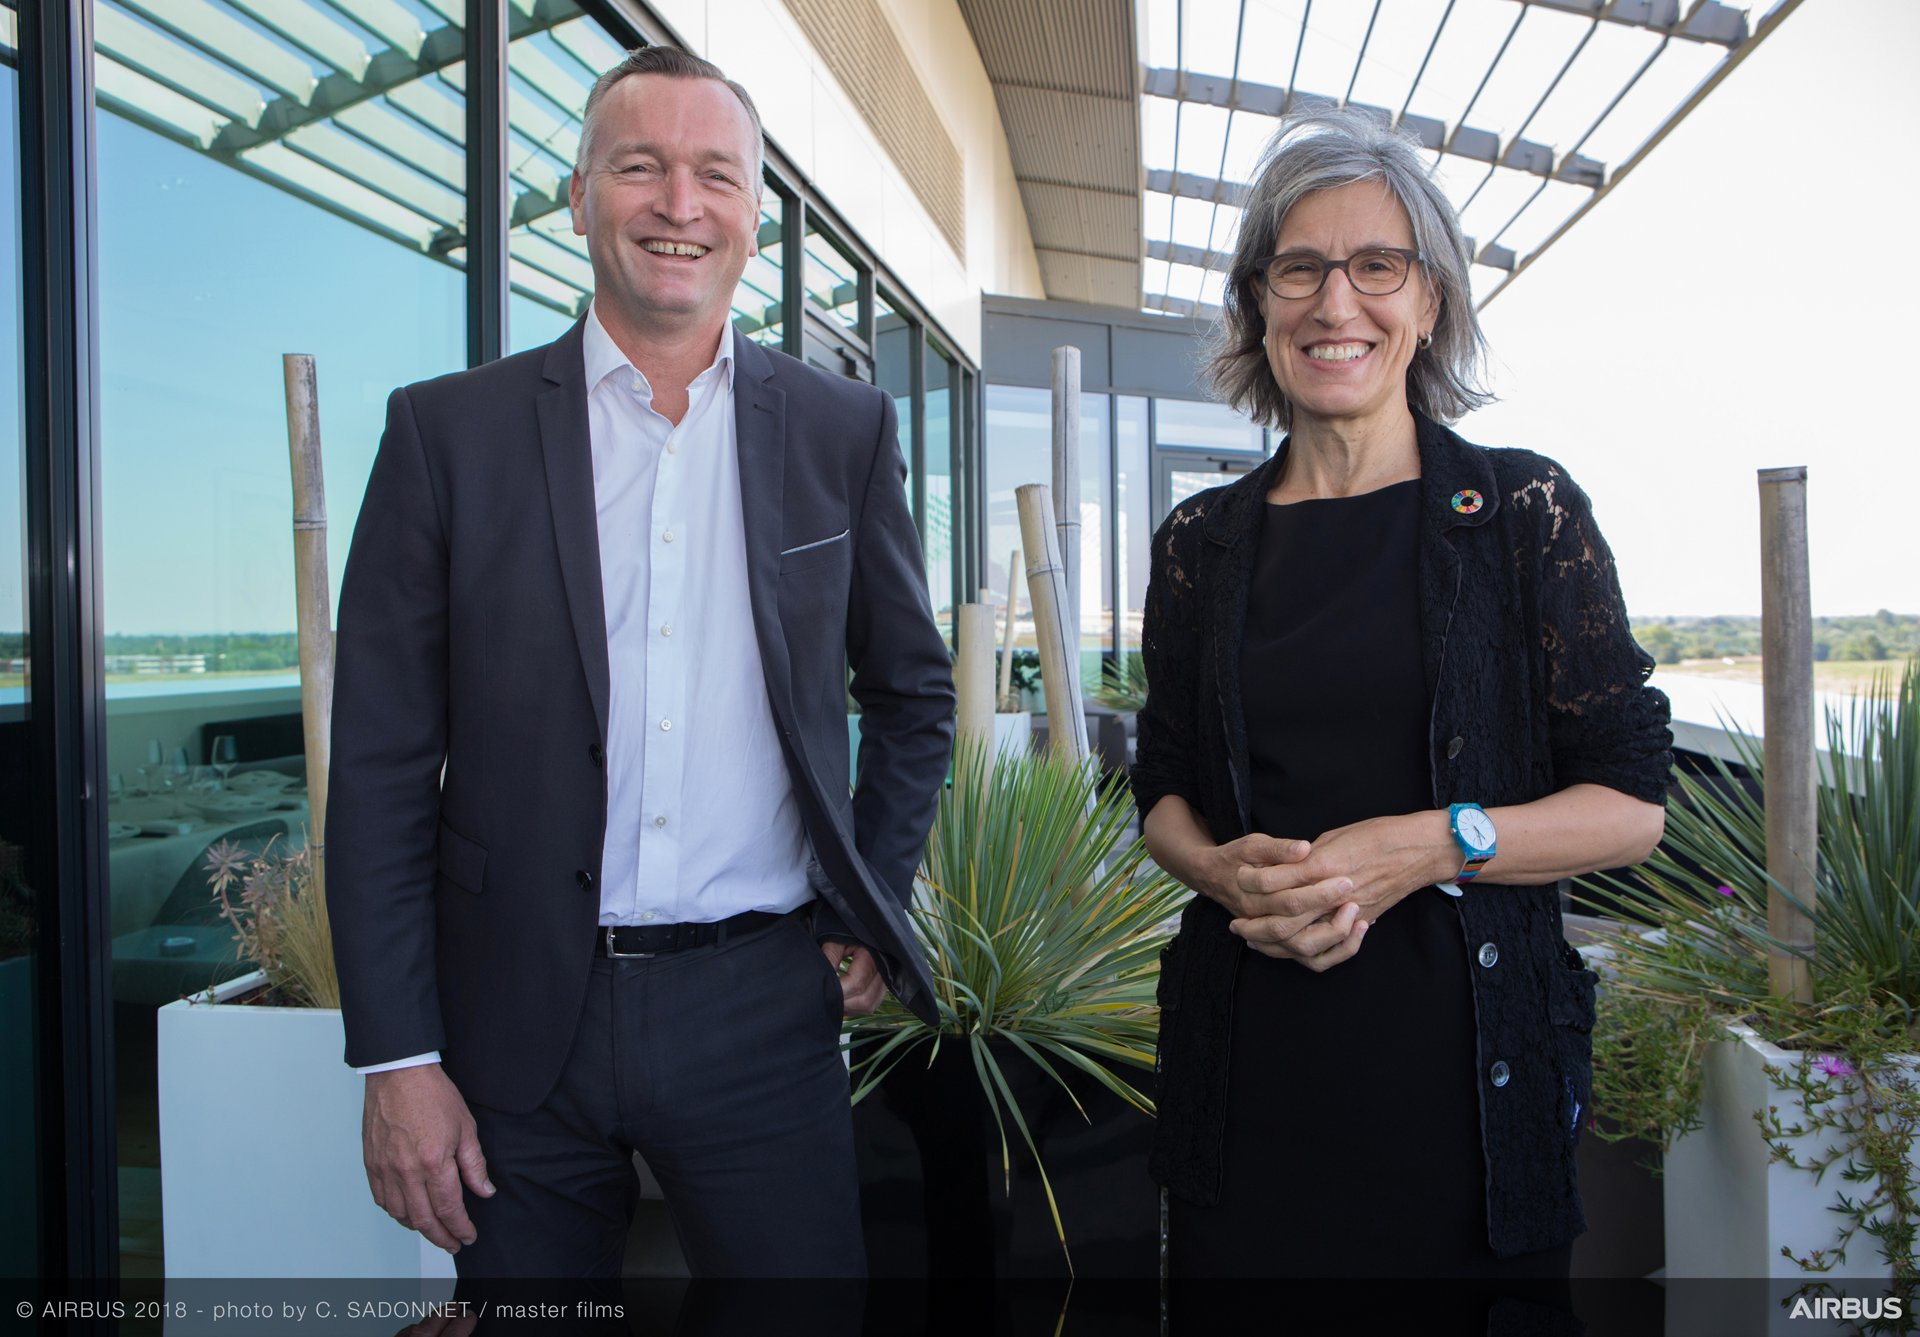 At Airbus headquarters in Toulouse, France following signing of the renewed Fly Your Ideas student challenge partnership agreement between UNESCO are (from left to right): Marc Fontaine, Digital Transformation Officer, Airbus; and Flavia Schlegel, Assistant Director-General for Natural Sciences, UNESCO